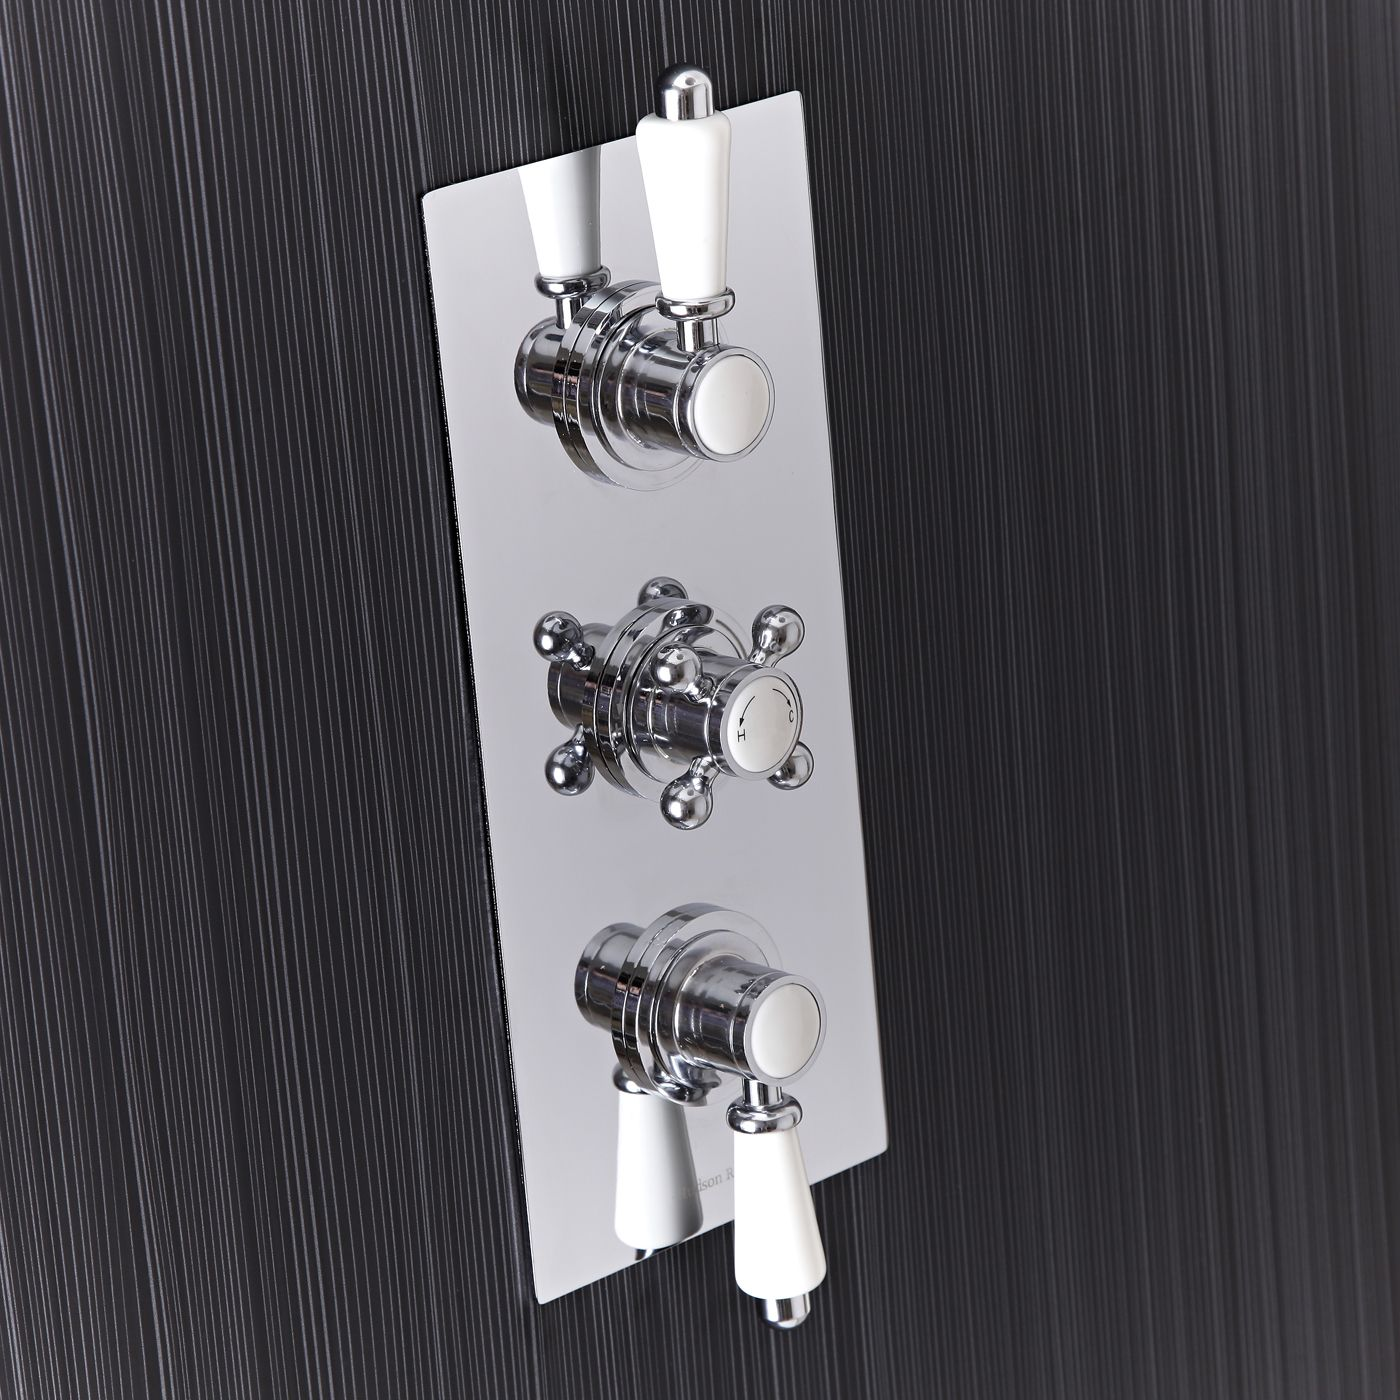 Traditional Concealed 3 Outlet Triple with Diverter Thermostatic Shower Valve